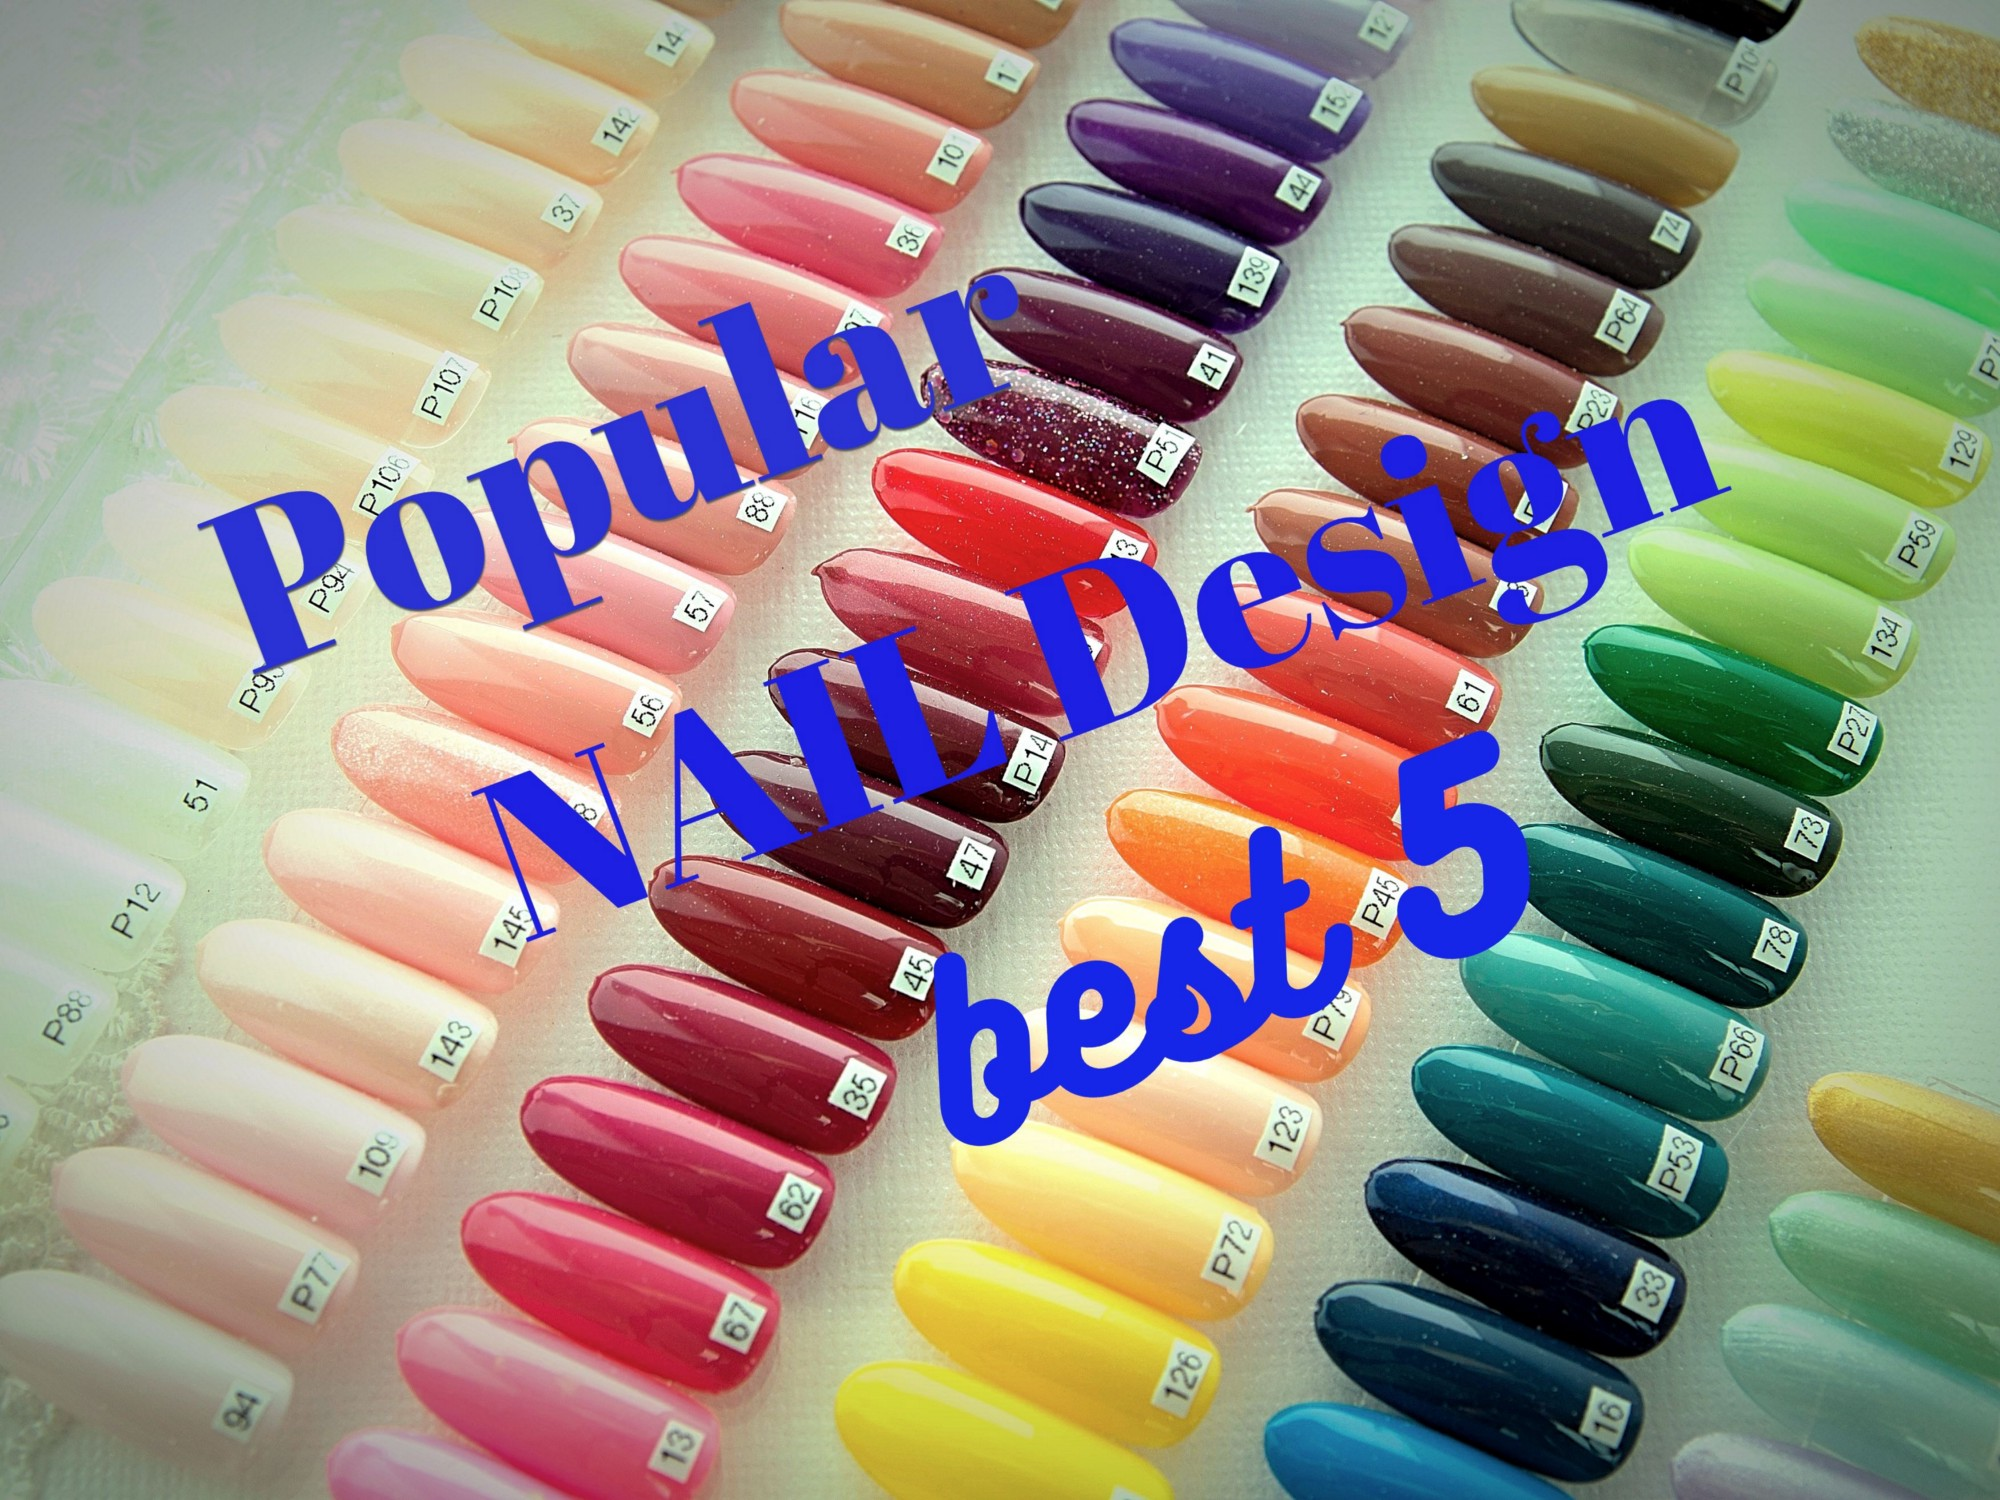 Japanese Nail Art Top 5 Popular Designs Japan Travel Guide Jw